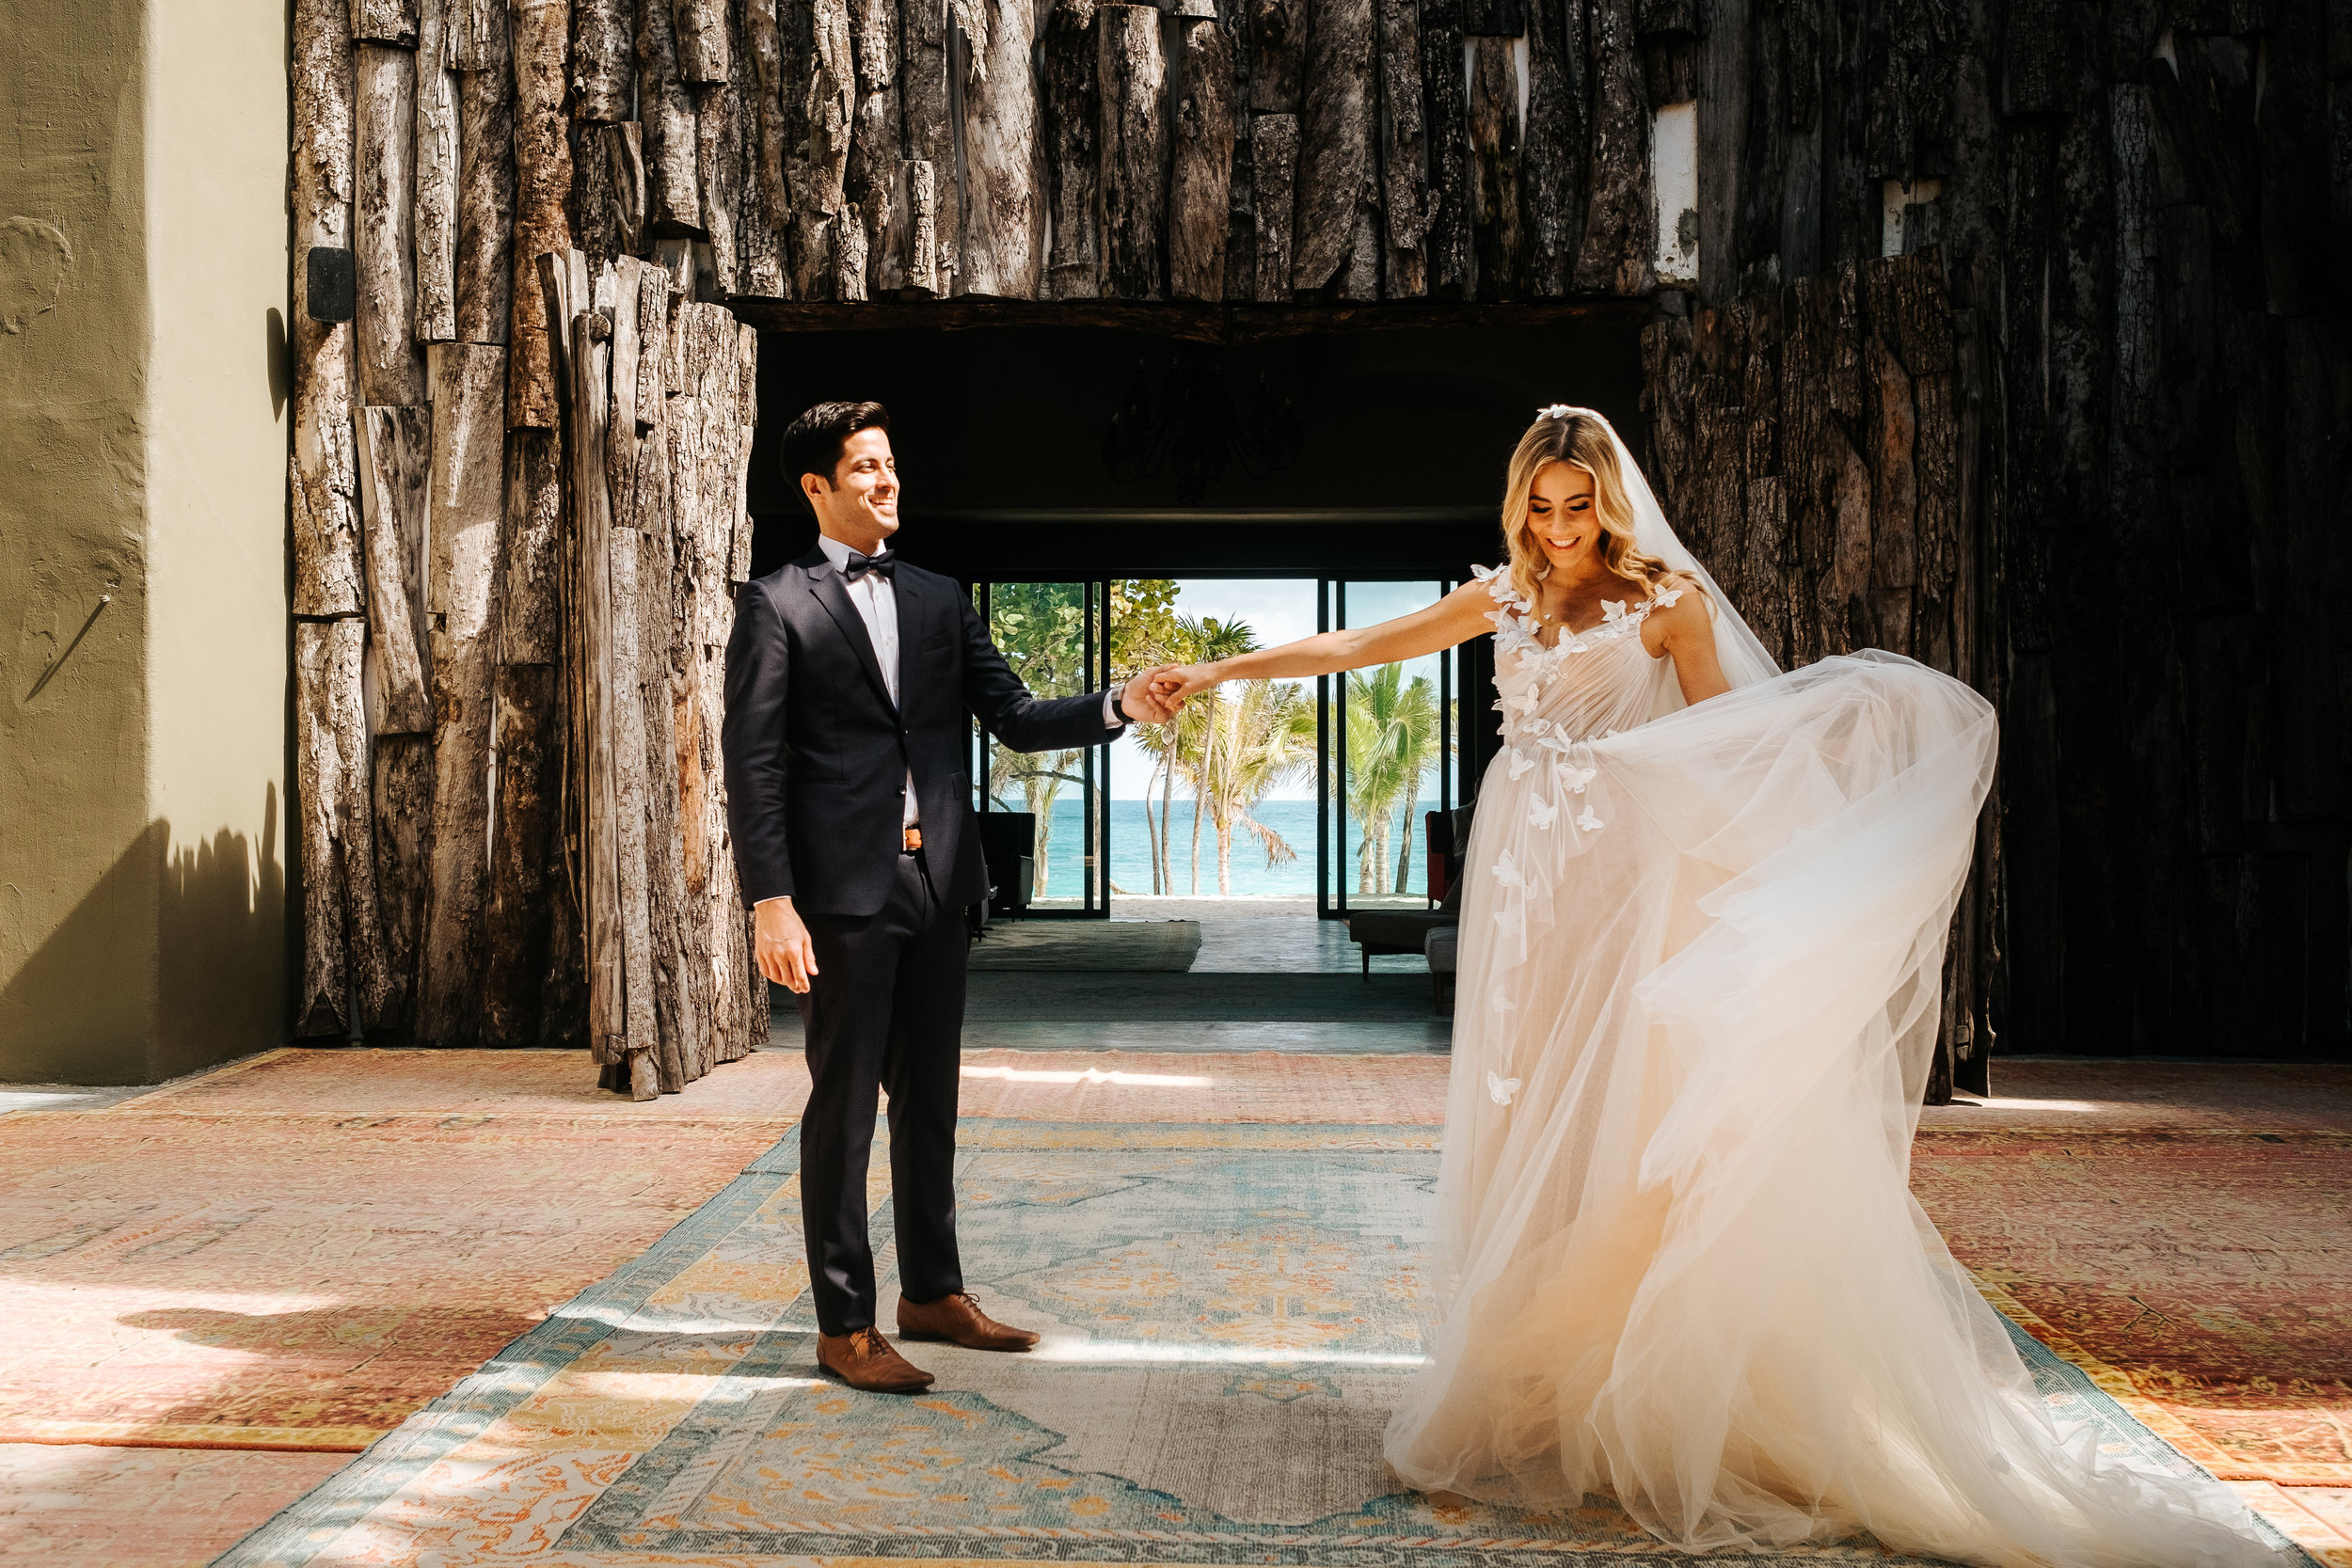 Lourdes & Oscar - Dreamy wedding at Tulum, Mexico